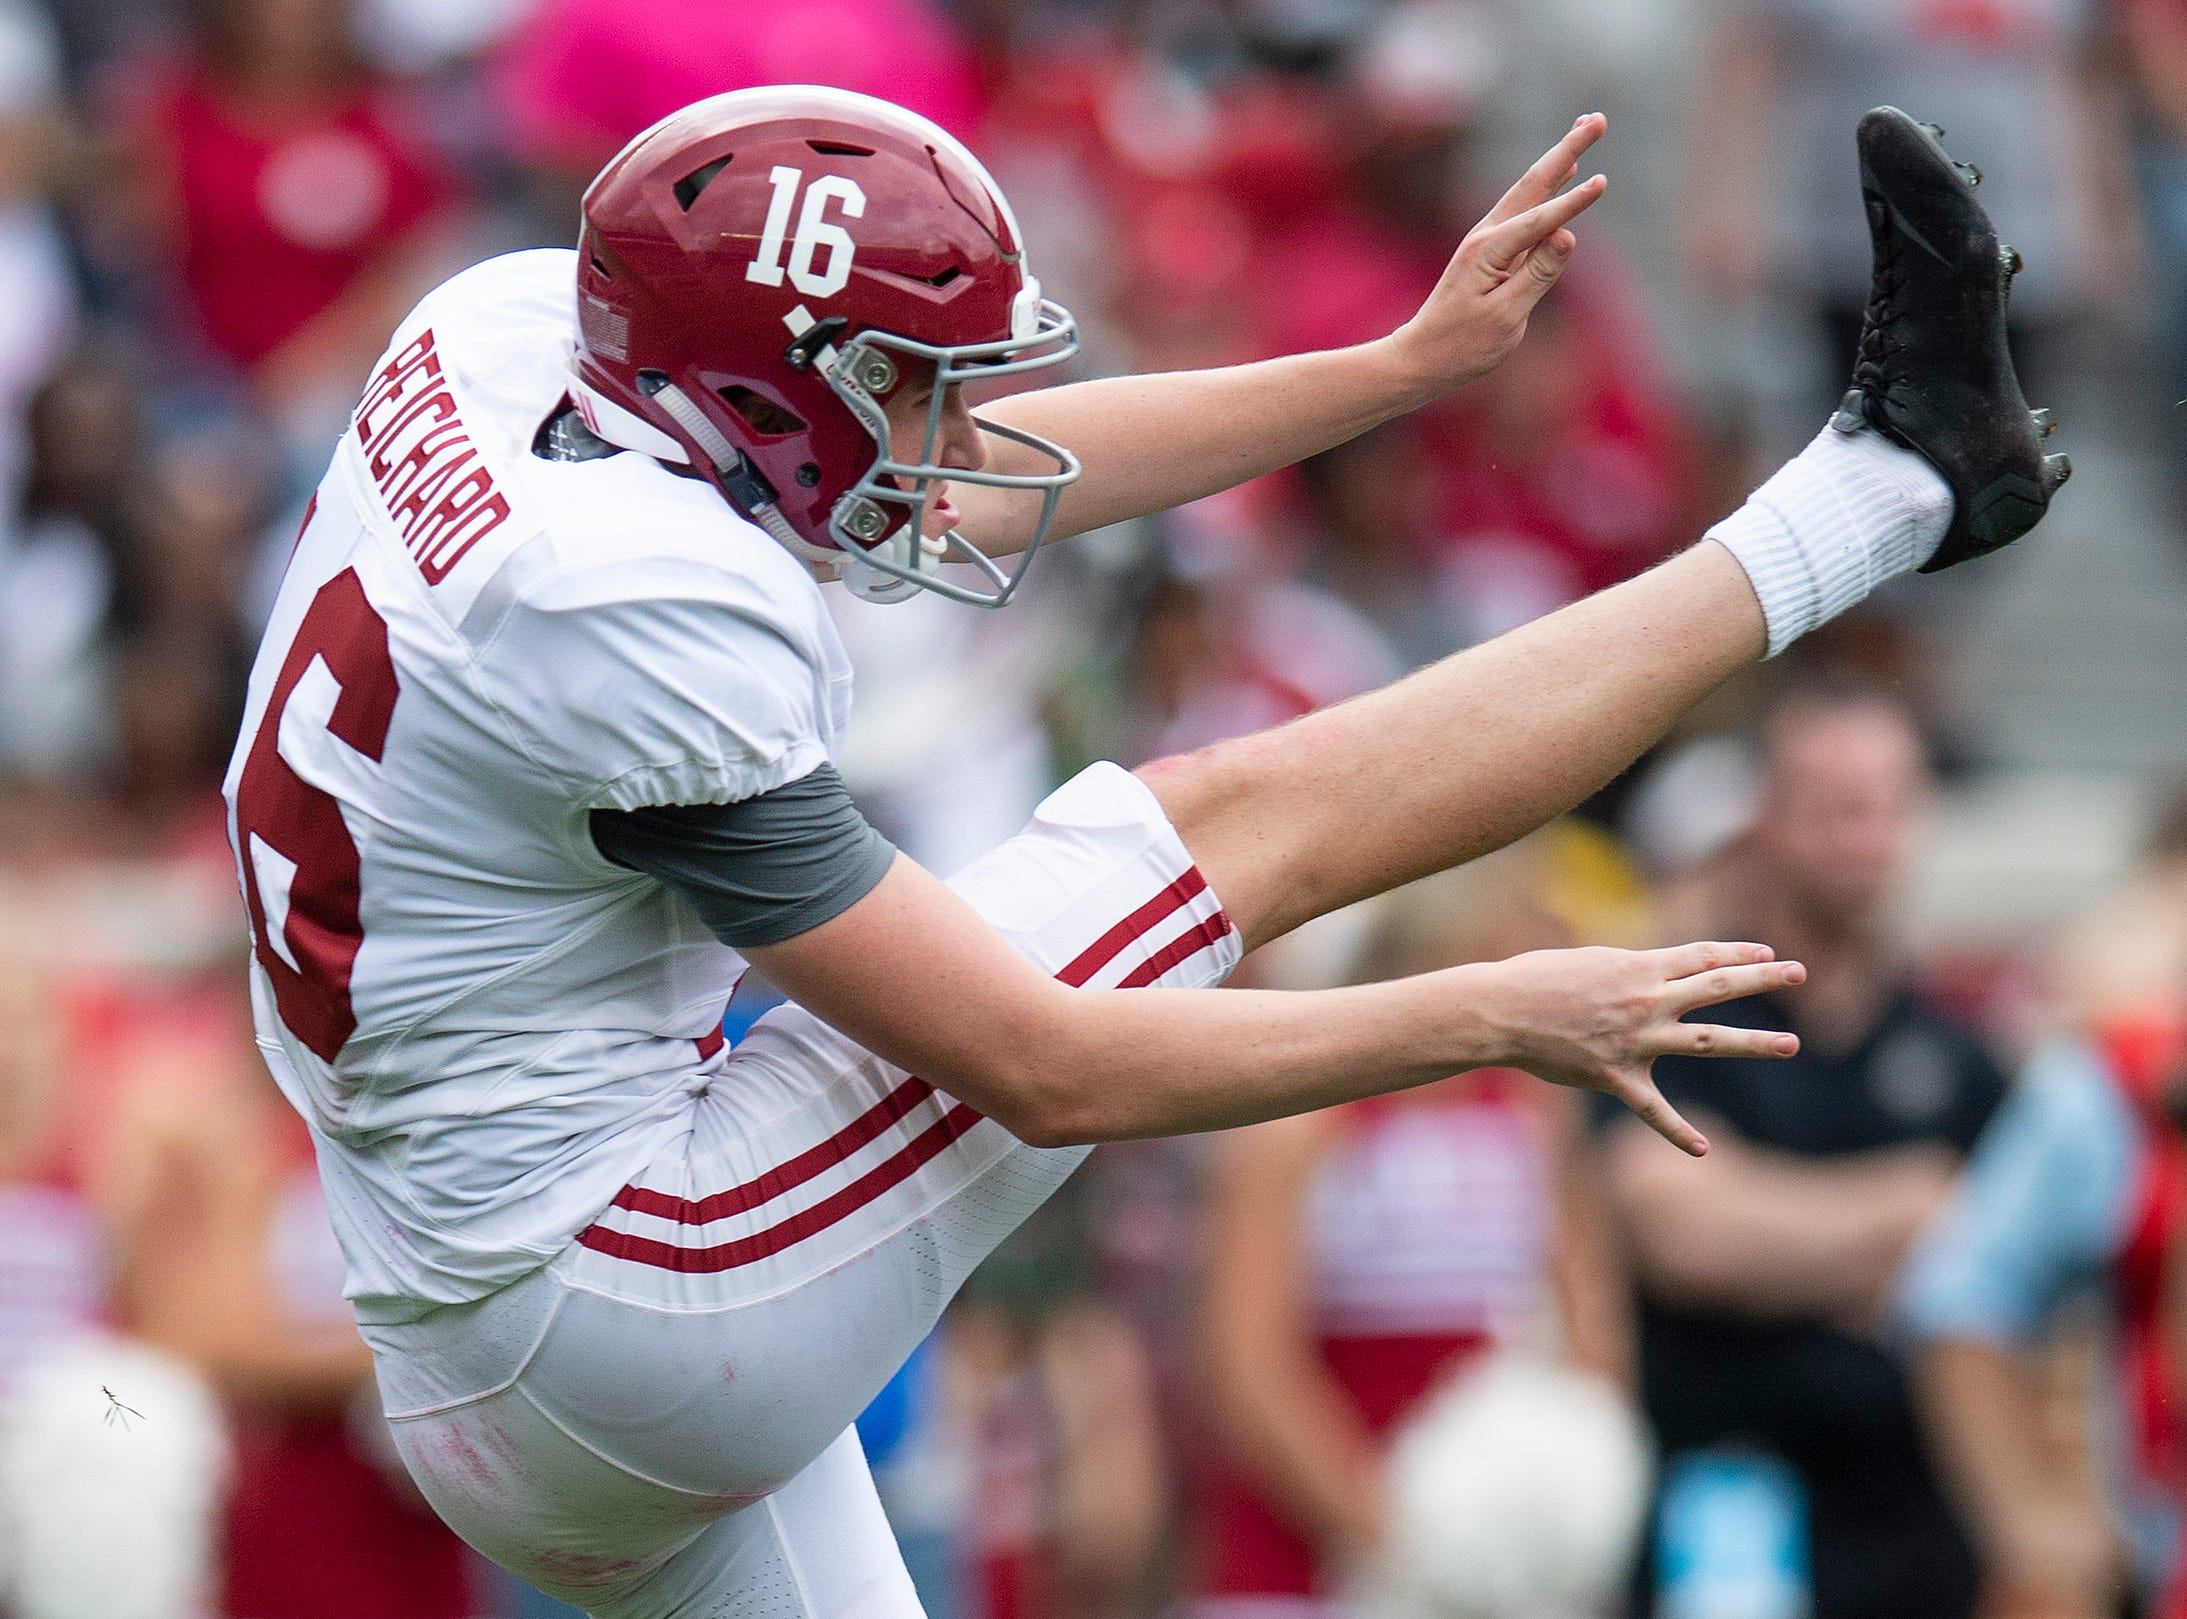 Alabama placekicker Will Reichard (16) punts during first half action in the Alabama A-Day spring football scrimmage game at Bryant Denny Stadium in Tuscaloosa, Ala., on Saturday April 13, 2019.